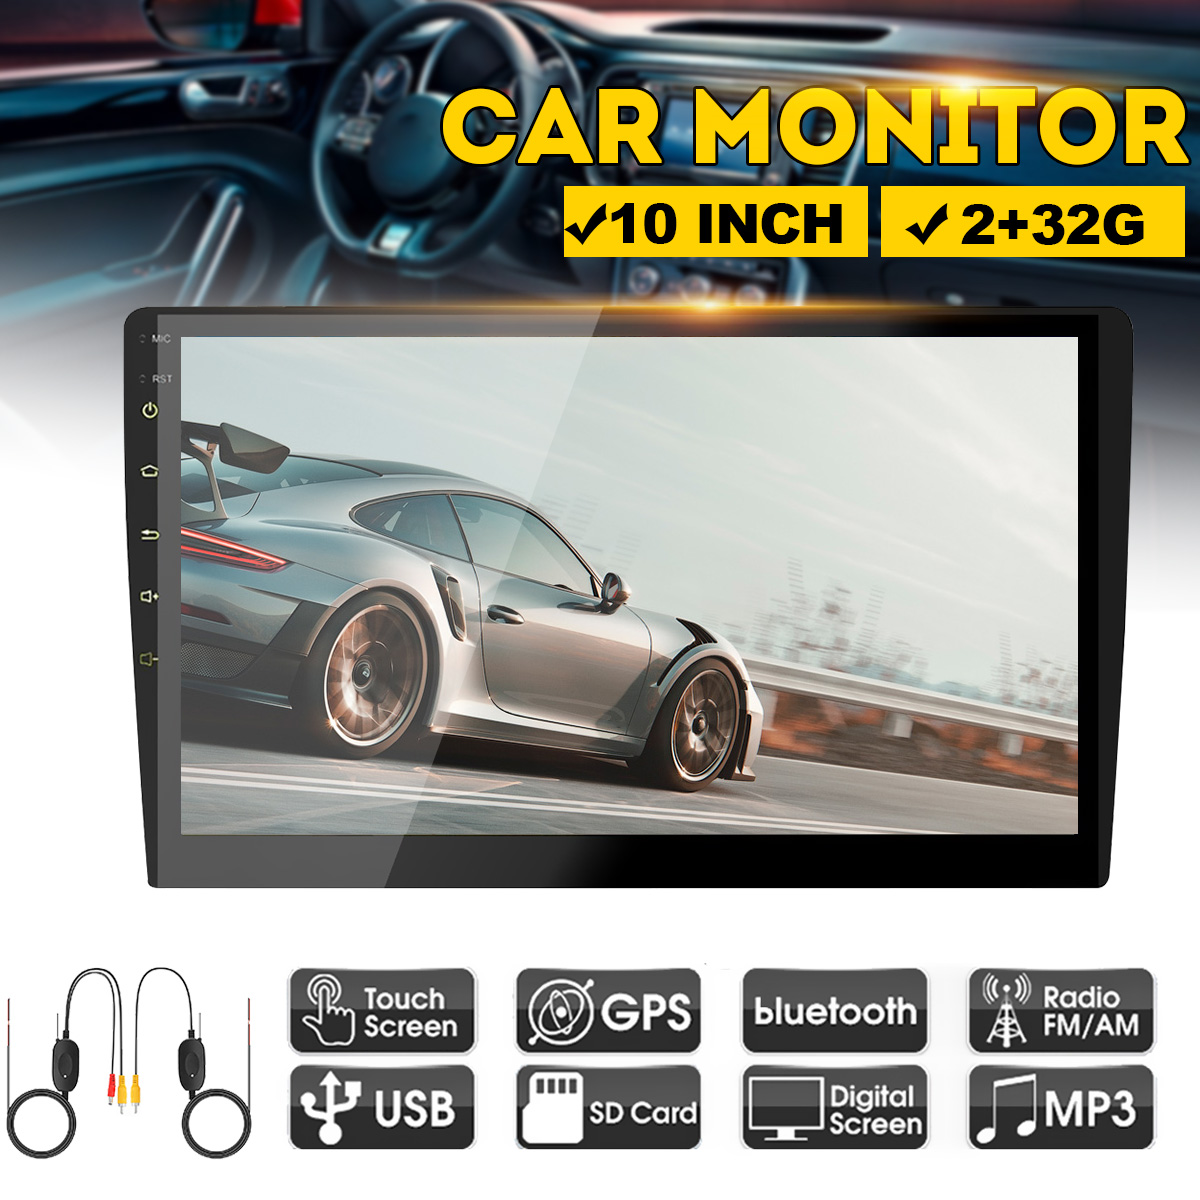 10 Inch Full HD 2+32G Car Multimedia Player 2 Din Android Car Stereo Radio Bluetooth WIFI Audio Stereo Car MP5 Player With GPS